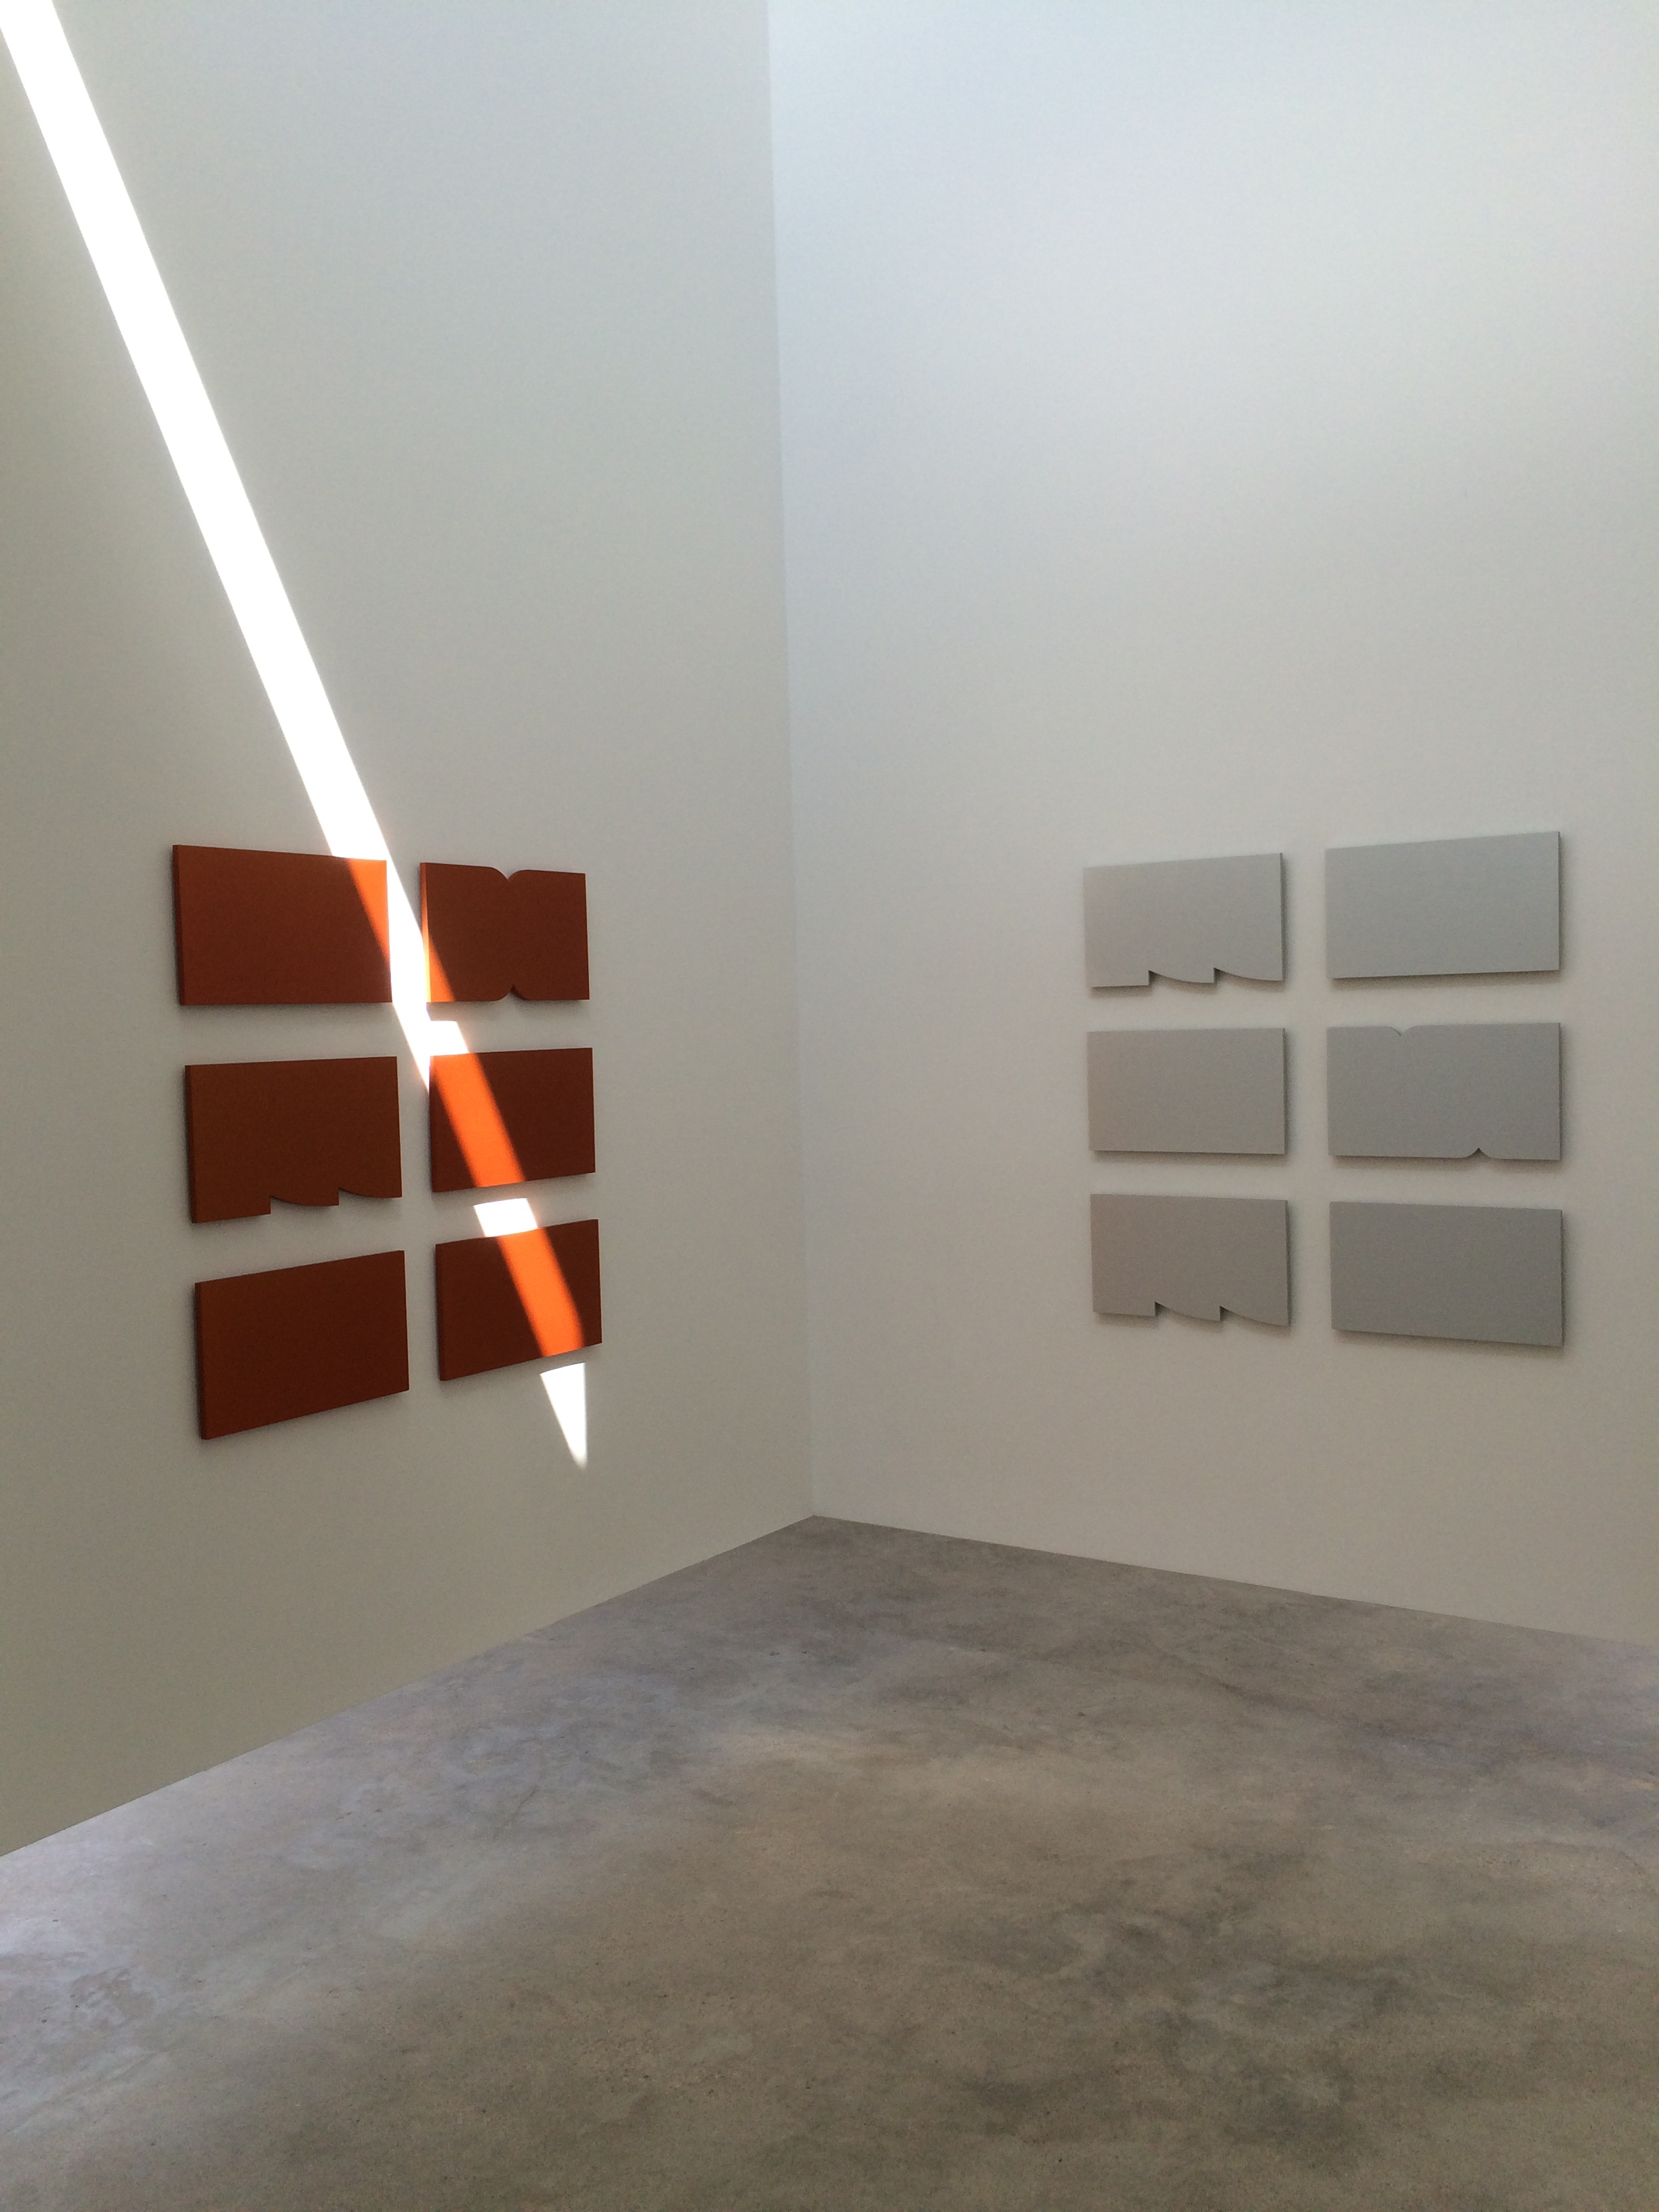 Orange Ridge 2015 and Silver Ridge - Anodized aluminum - both pieces are made up of 6 panels.